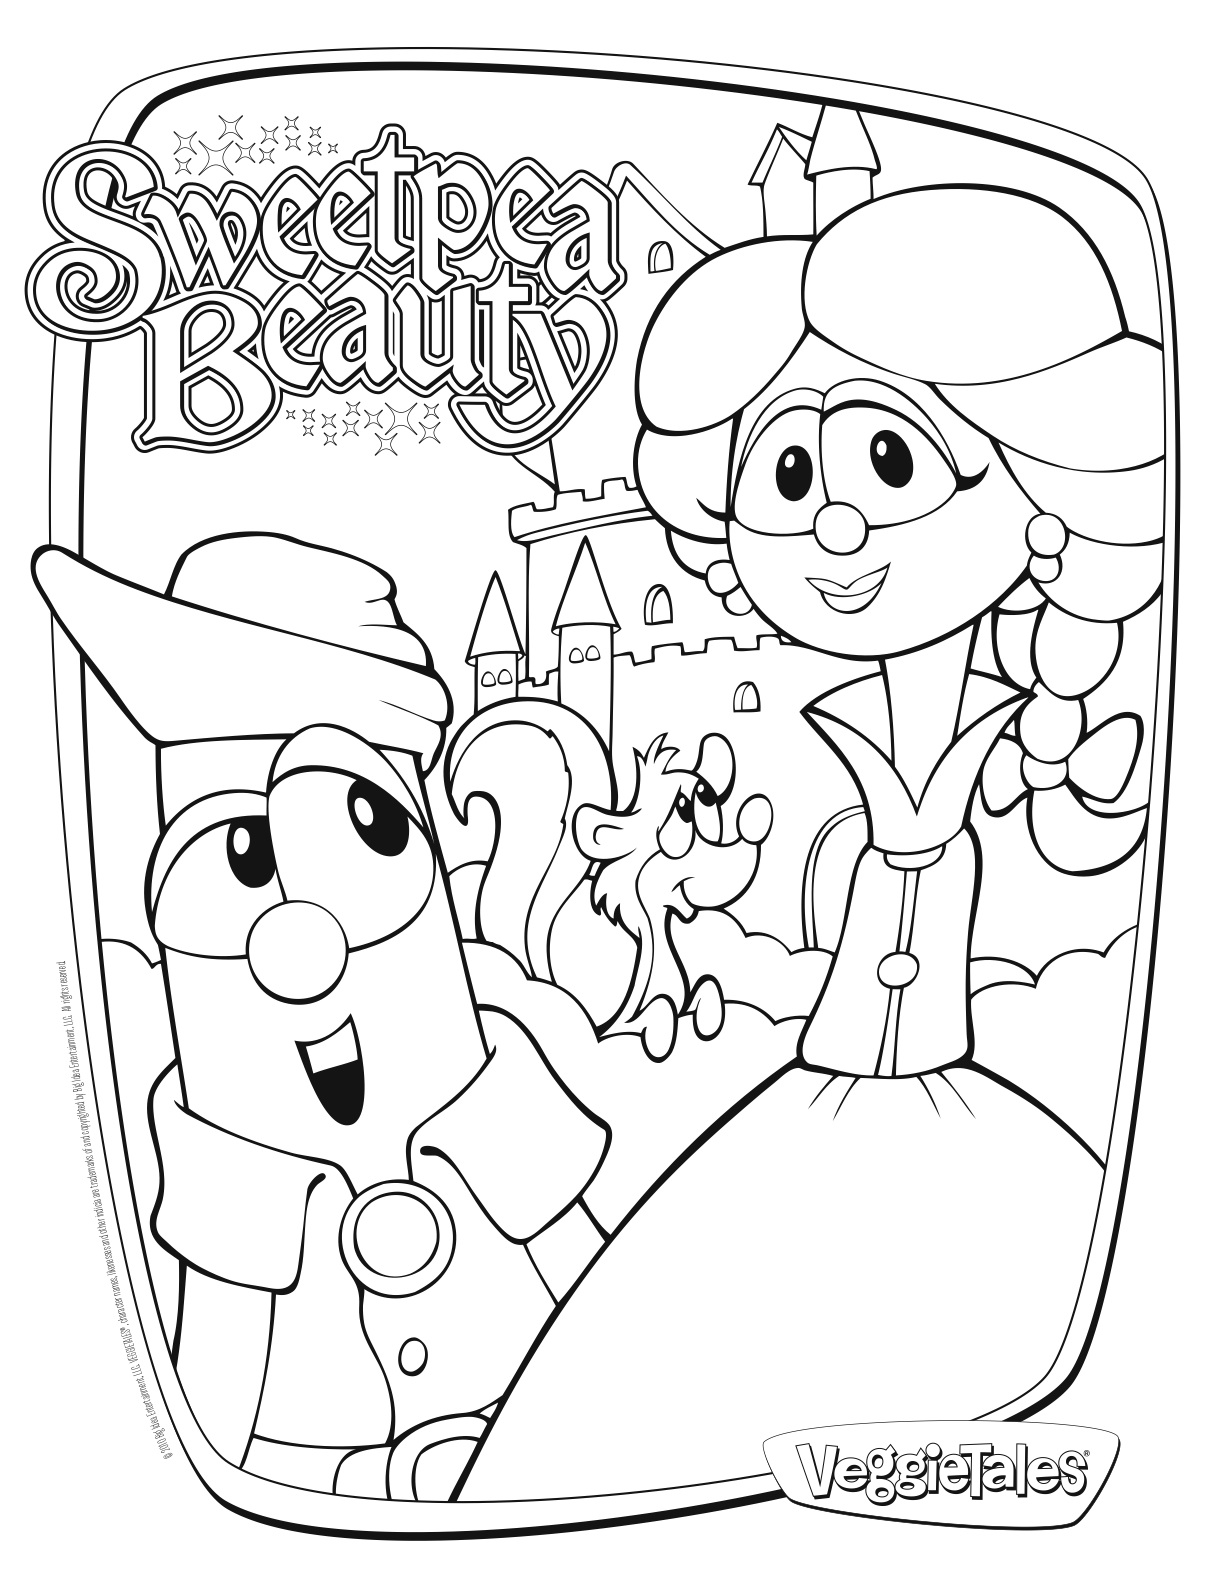 the pirates movie - Veggie Tales Coloring Pages